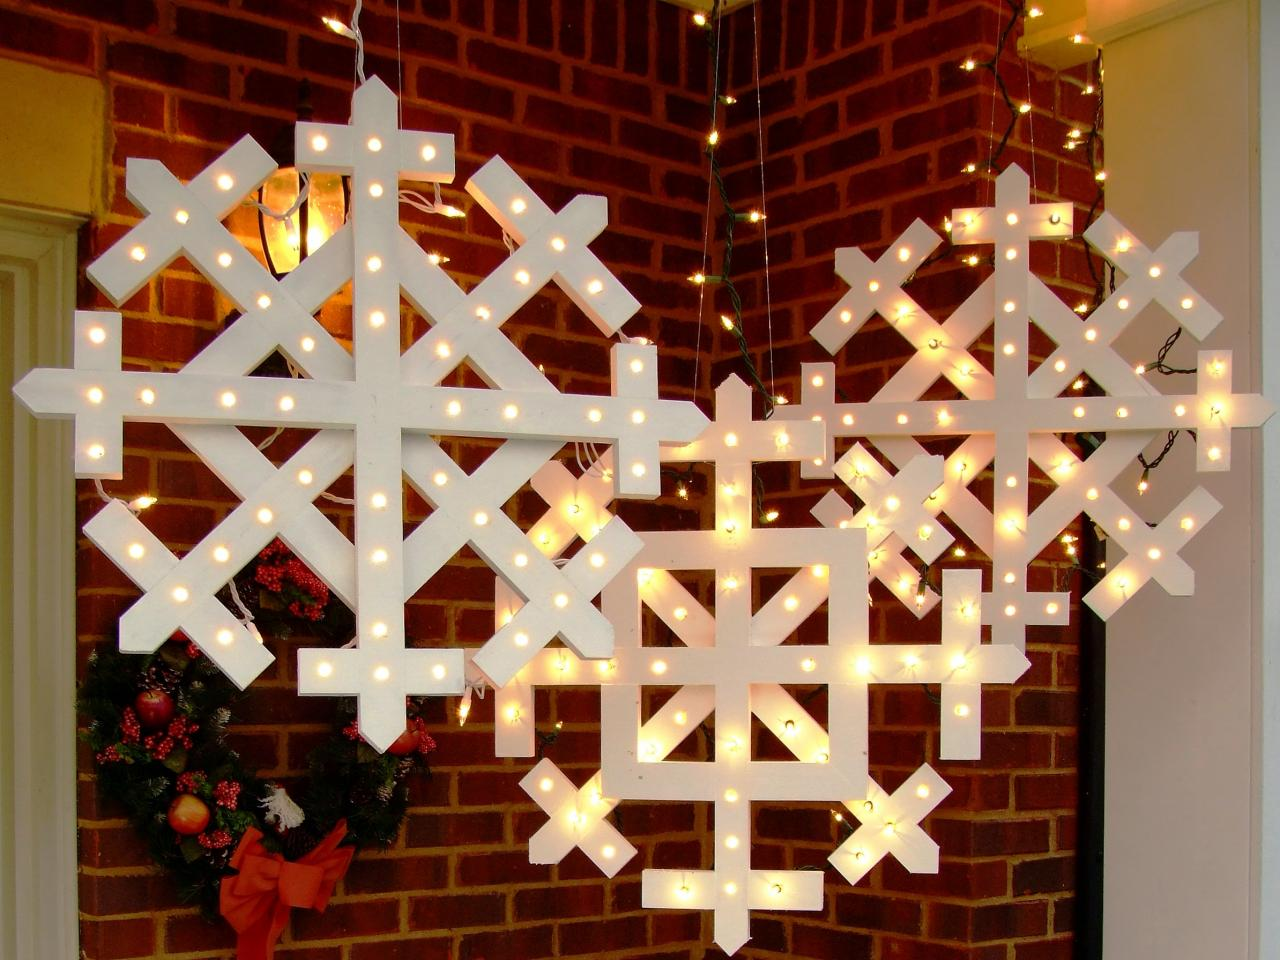 Holiday Decorating Ideas 2014 25 ridiculously awesome holiday decor ideas - how to build it